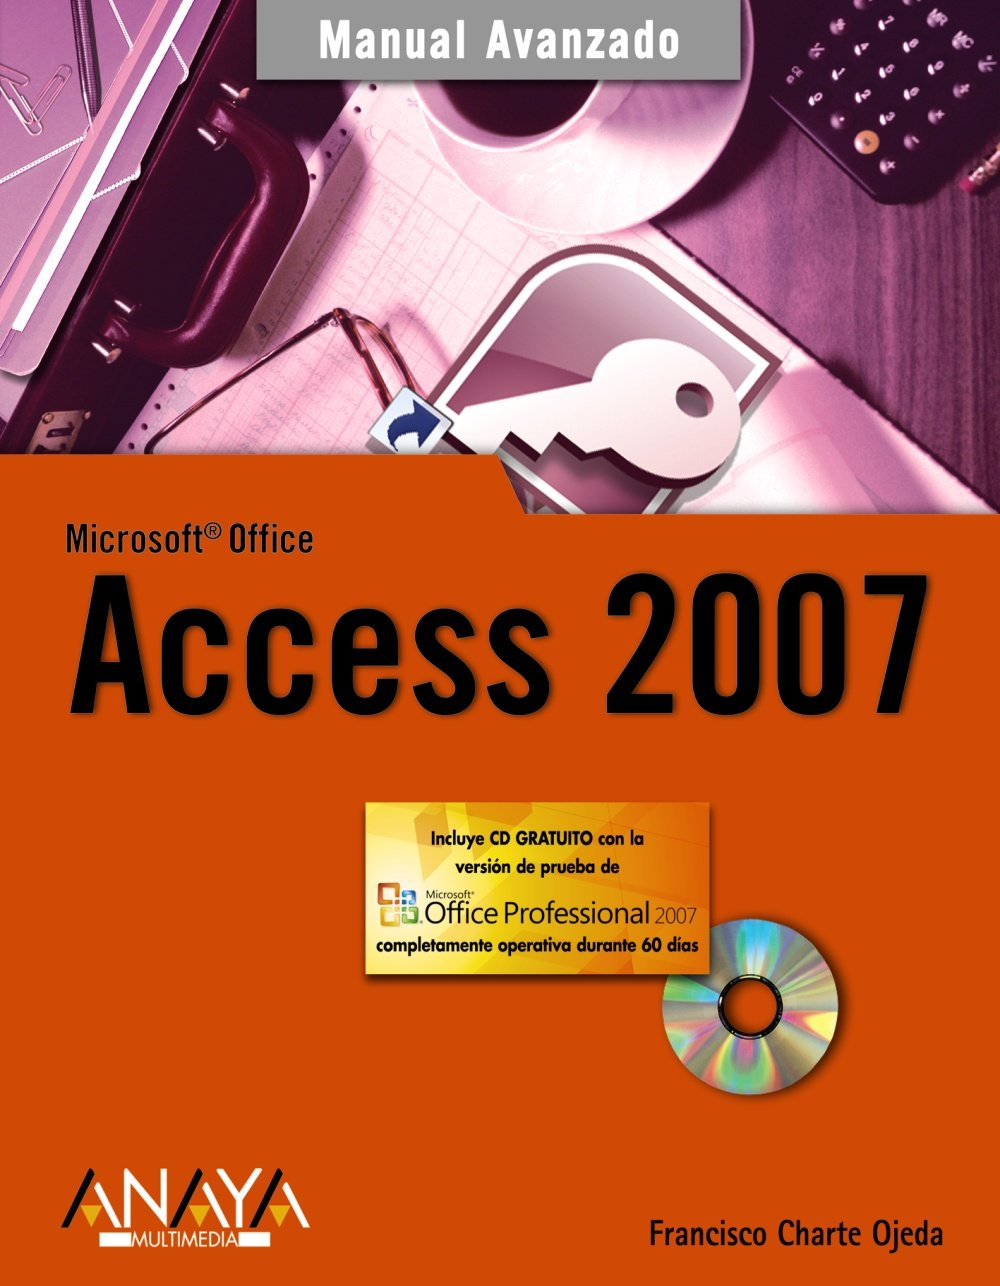 Access 2007 (Manuales Avanzados) Tapa blanda – 21 may 2007 Francisco Charte ANAYA MULTIMEDIA 8441521999 1139678